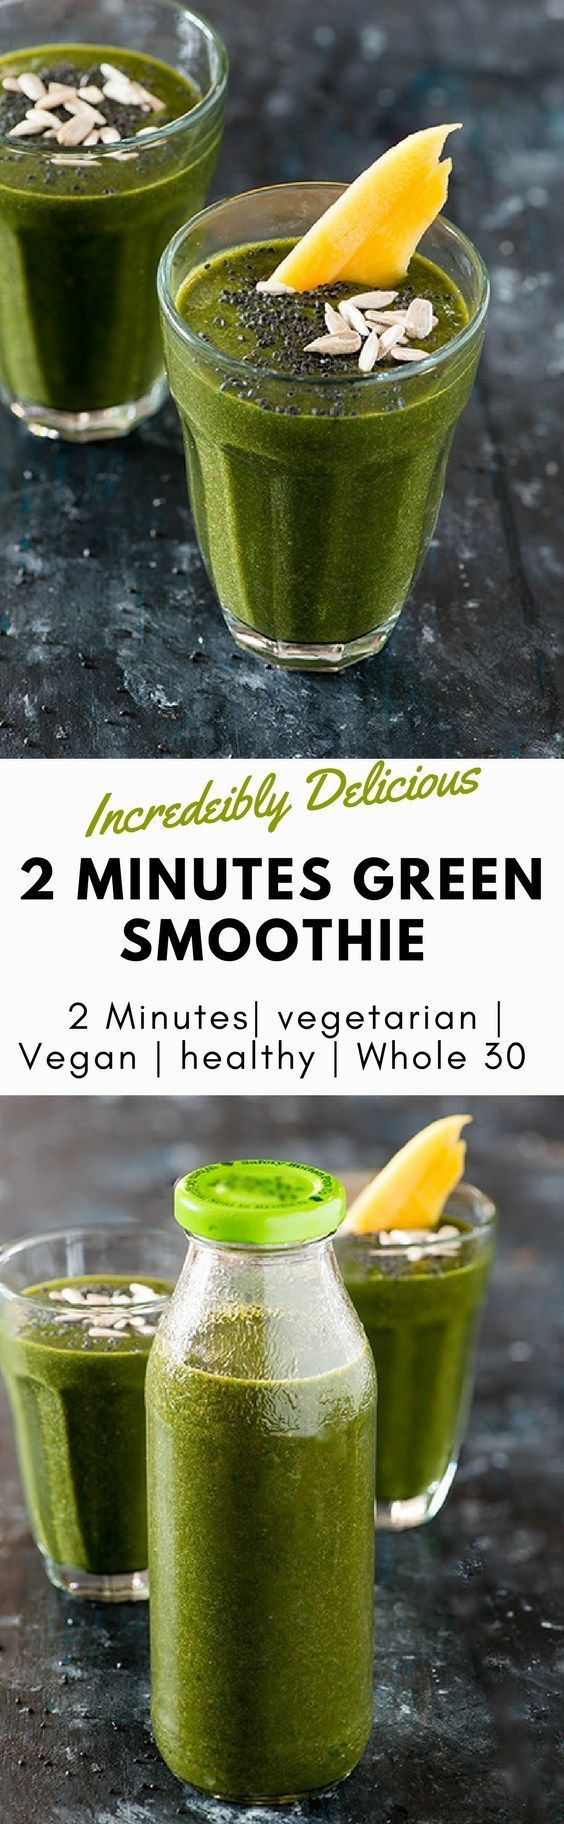 This Green Smoothie recipe is perfect start of a busy morning. All it takes is 2 Minutes to blend it if you have already prepped your ingredients during weekend meal prep. If you are planning a green smoothie cleanse or Green smoothie detox or whole 30 this is perfect vegetable smoothie recipe for you